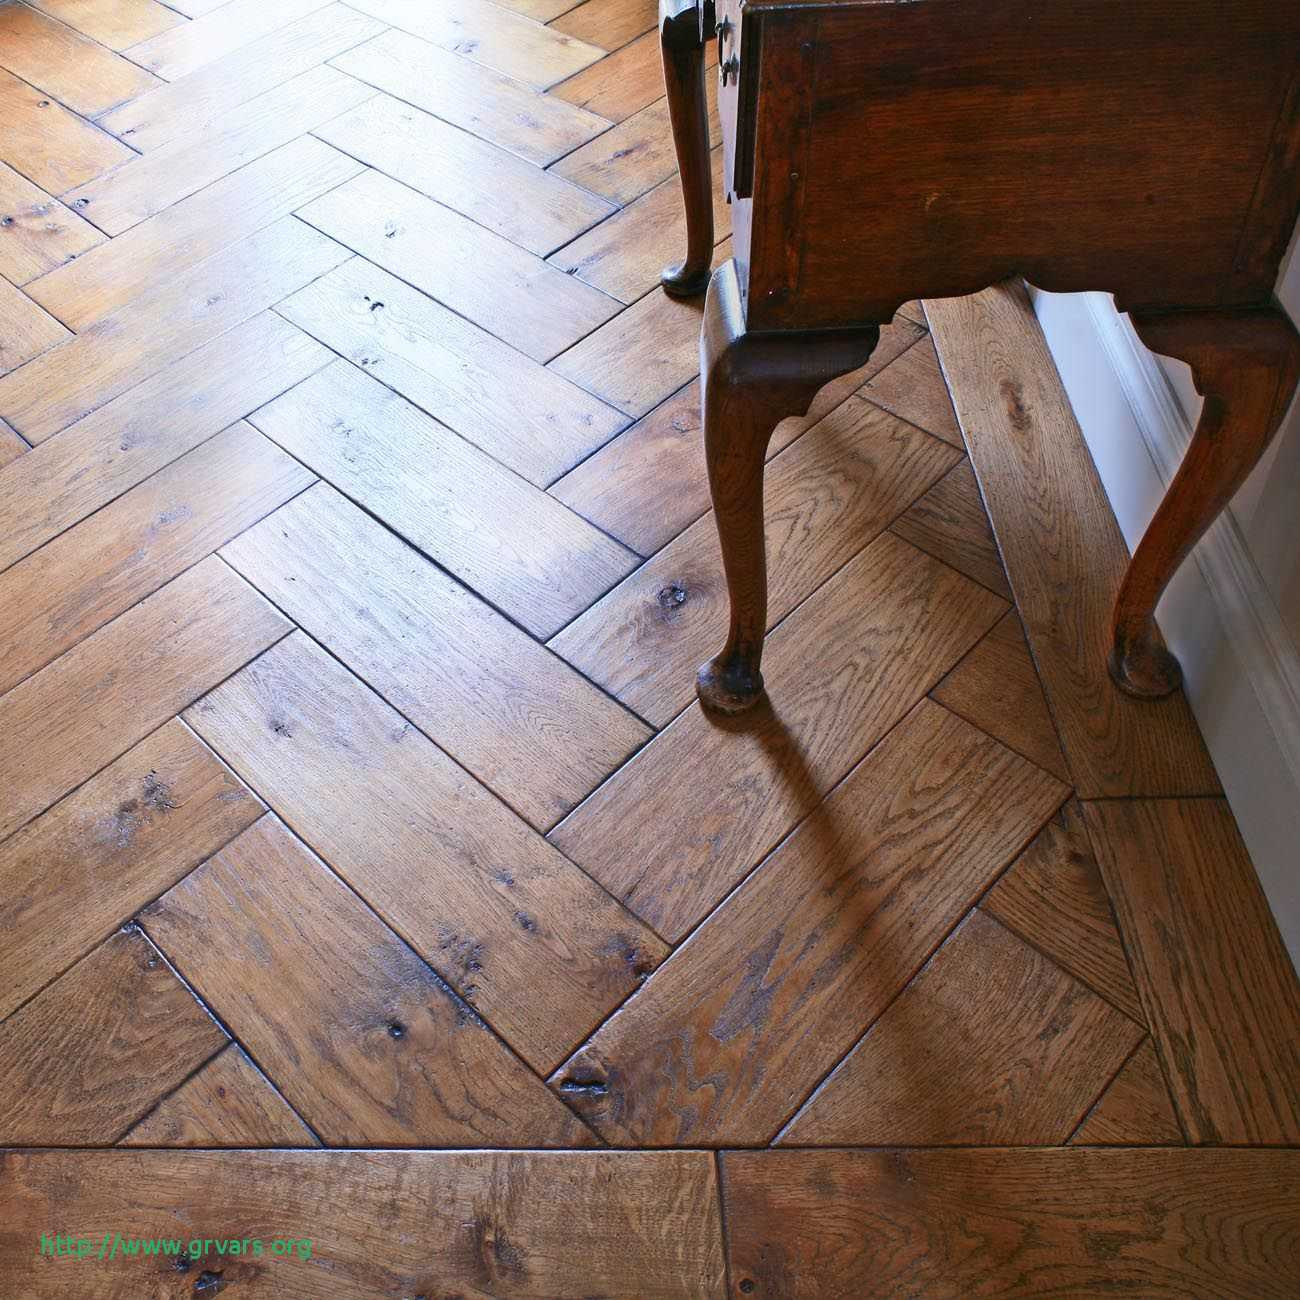 types of solid hardwood floors of how much is a hardwood floor inspirant hardwood floor wood hardwood for types unique i pinimg how much is a hardwood floor frais aged oak flooring from generations interiors pinterest